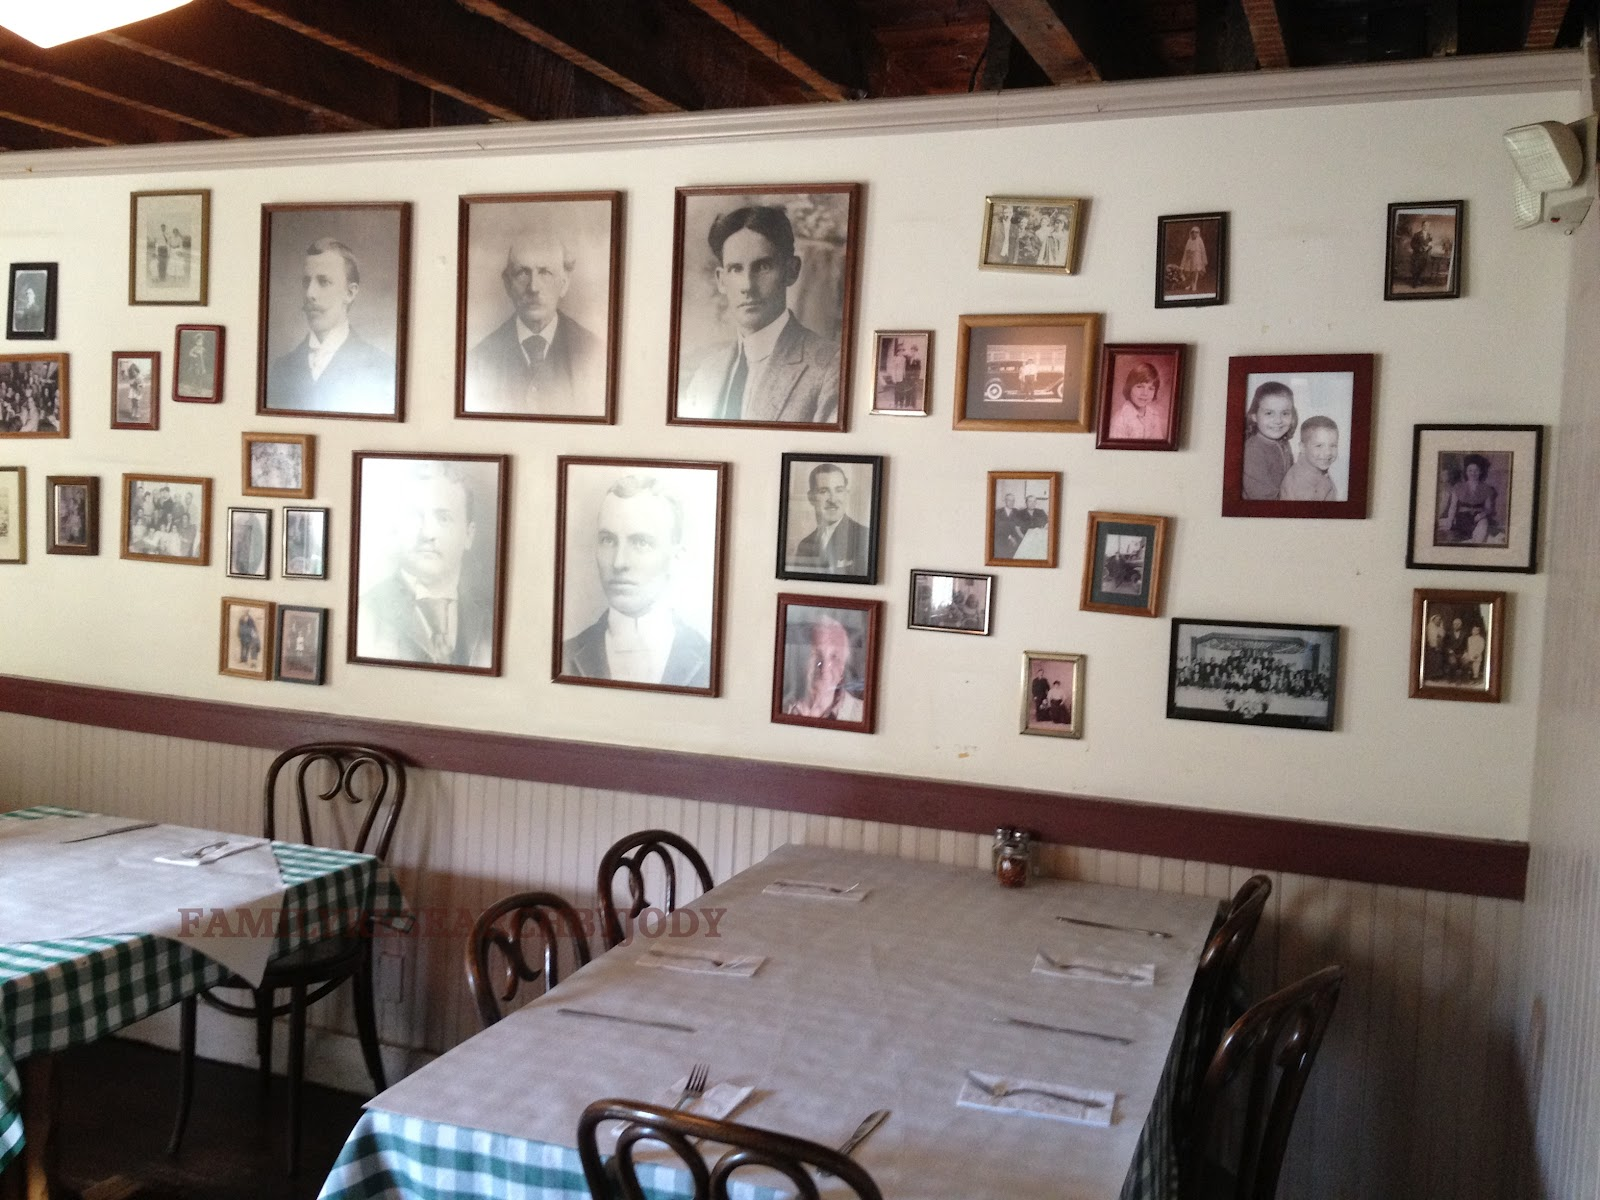 Cucina Restaurant Denville Nj Family History Research By Jody Lutter In The Footsteps Of Our